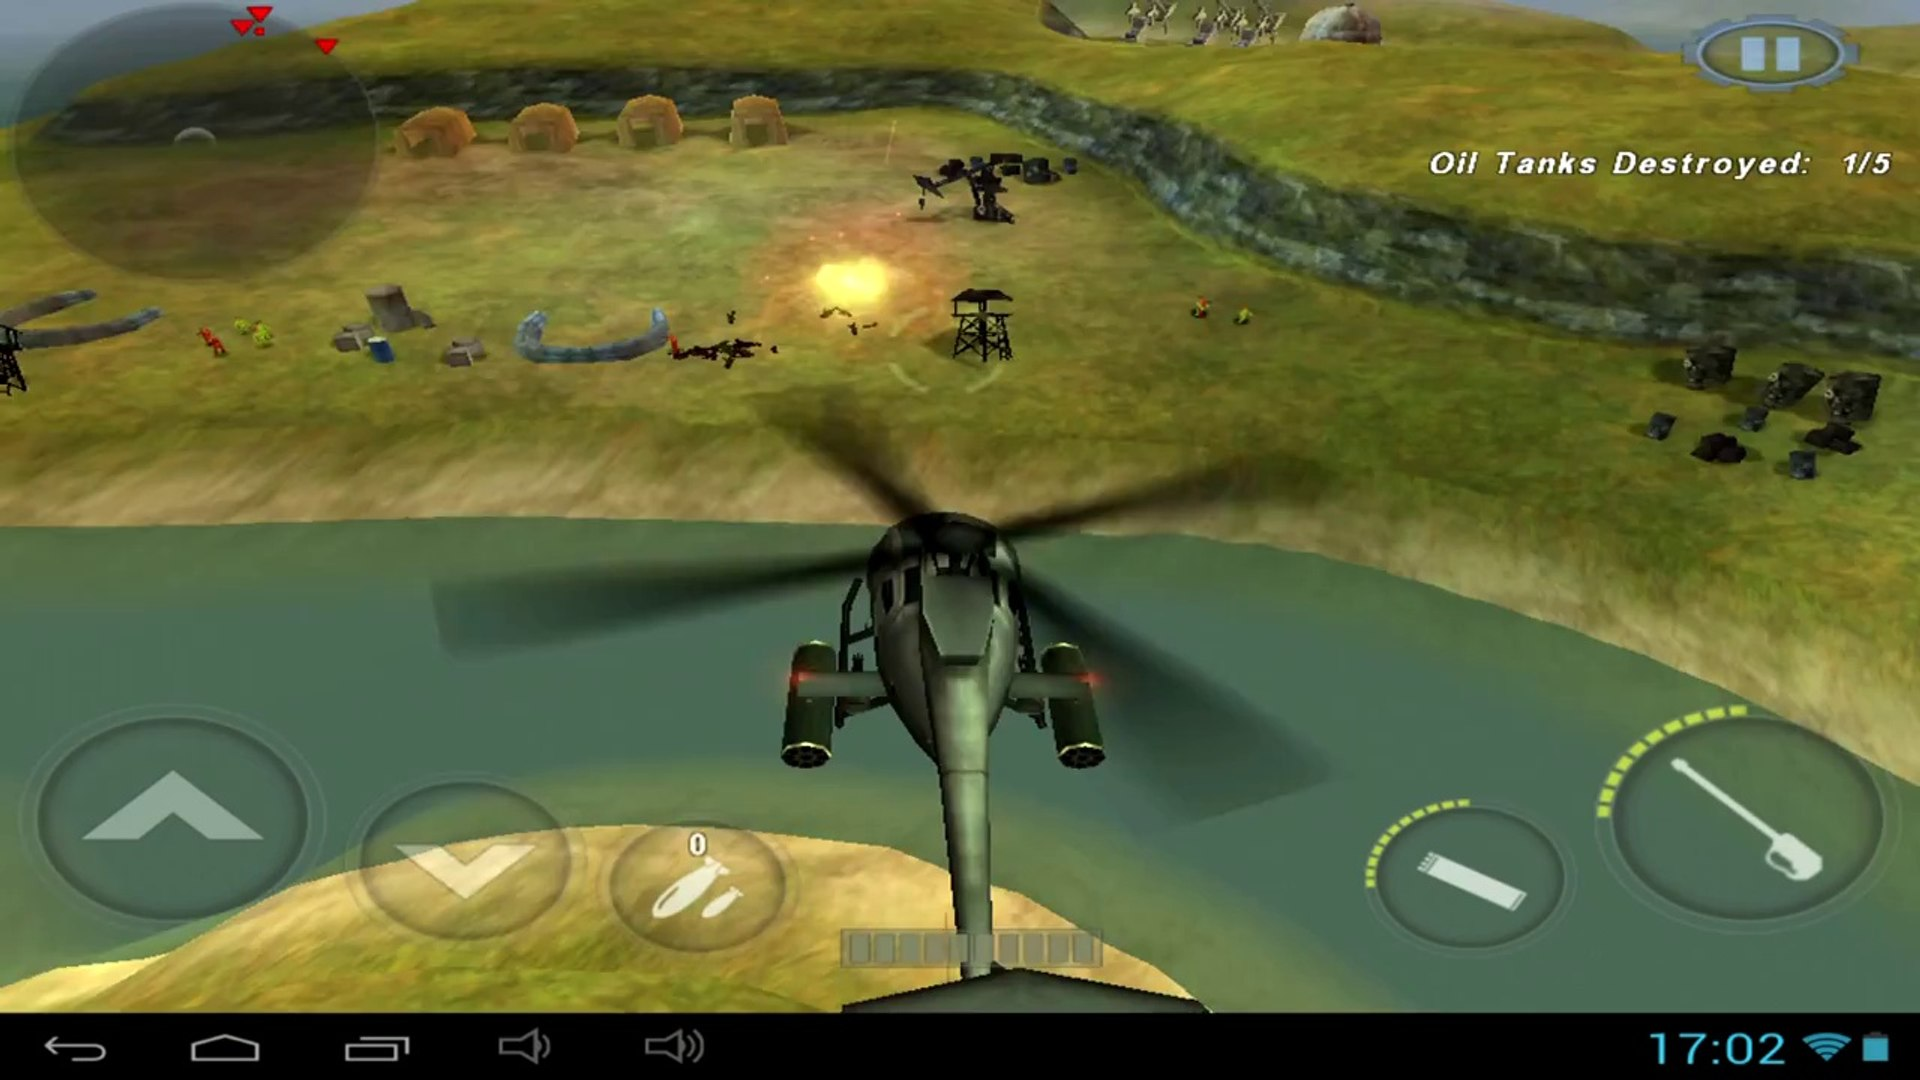 GUNSHIP BATTLE Helicopter 3D - Android gameplay PlayRawNow - video  dailymotion